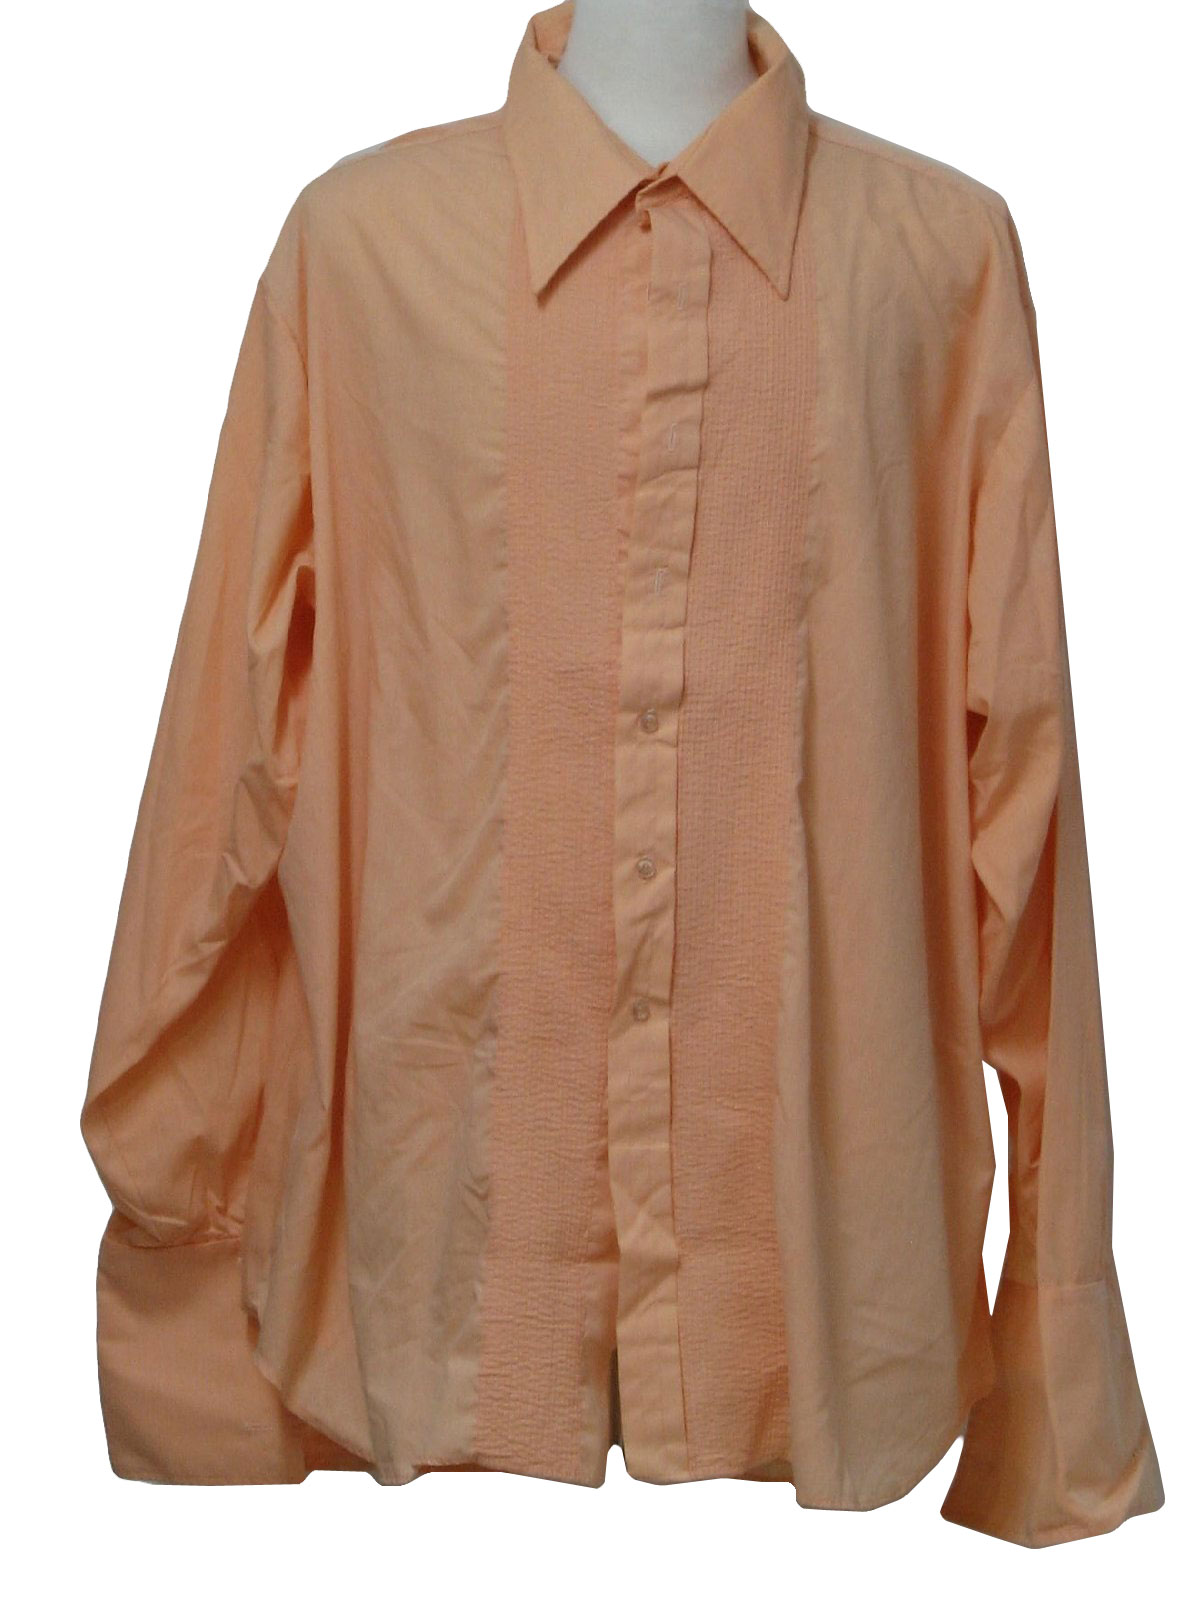 Vintage 1970 39 s shirt 70s l and m fashions mens for Tuxedo shirt no studs